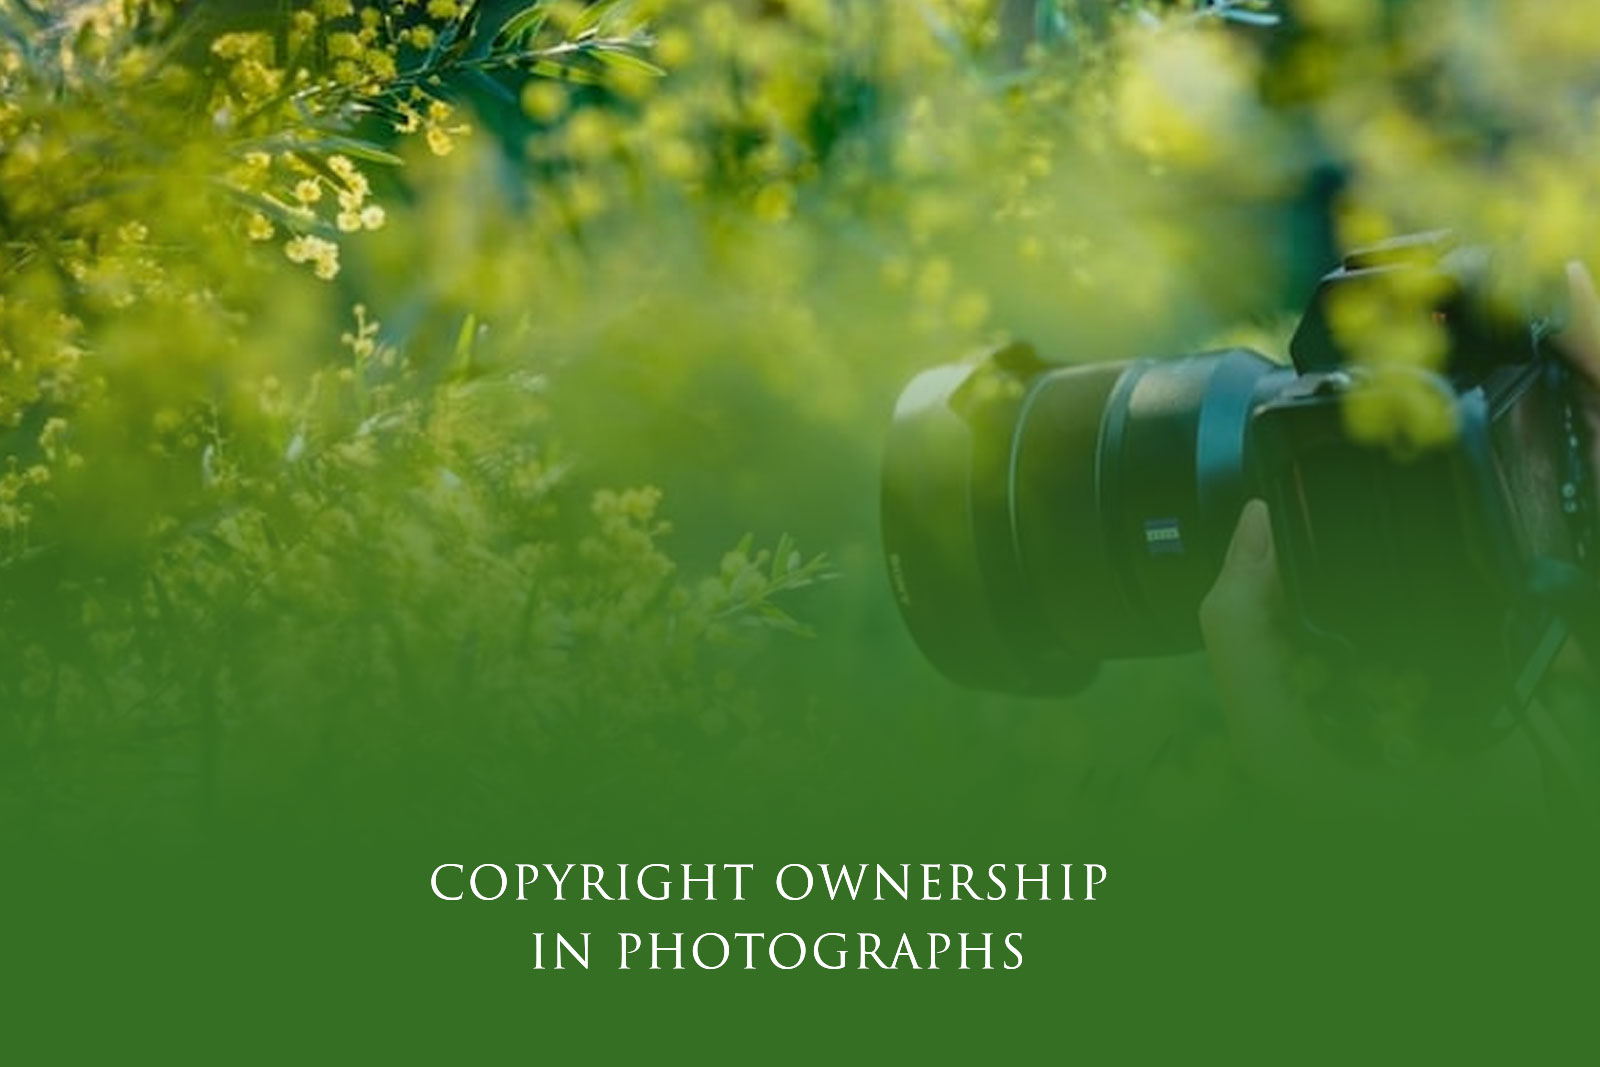 Copyright Ownership in Photographs